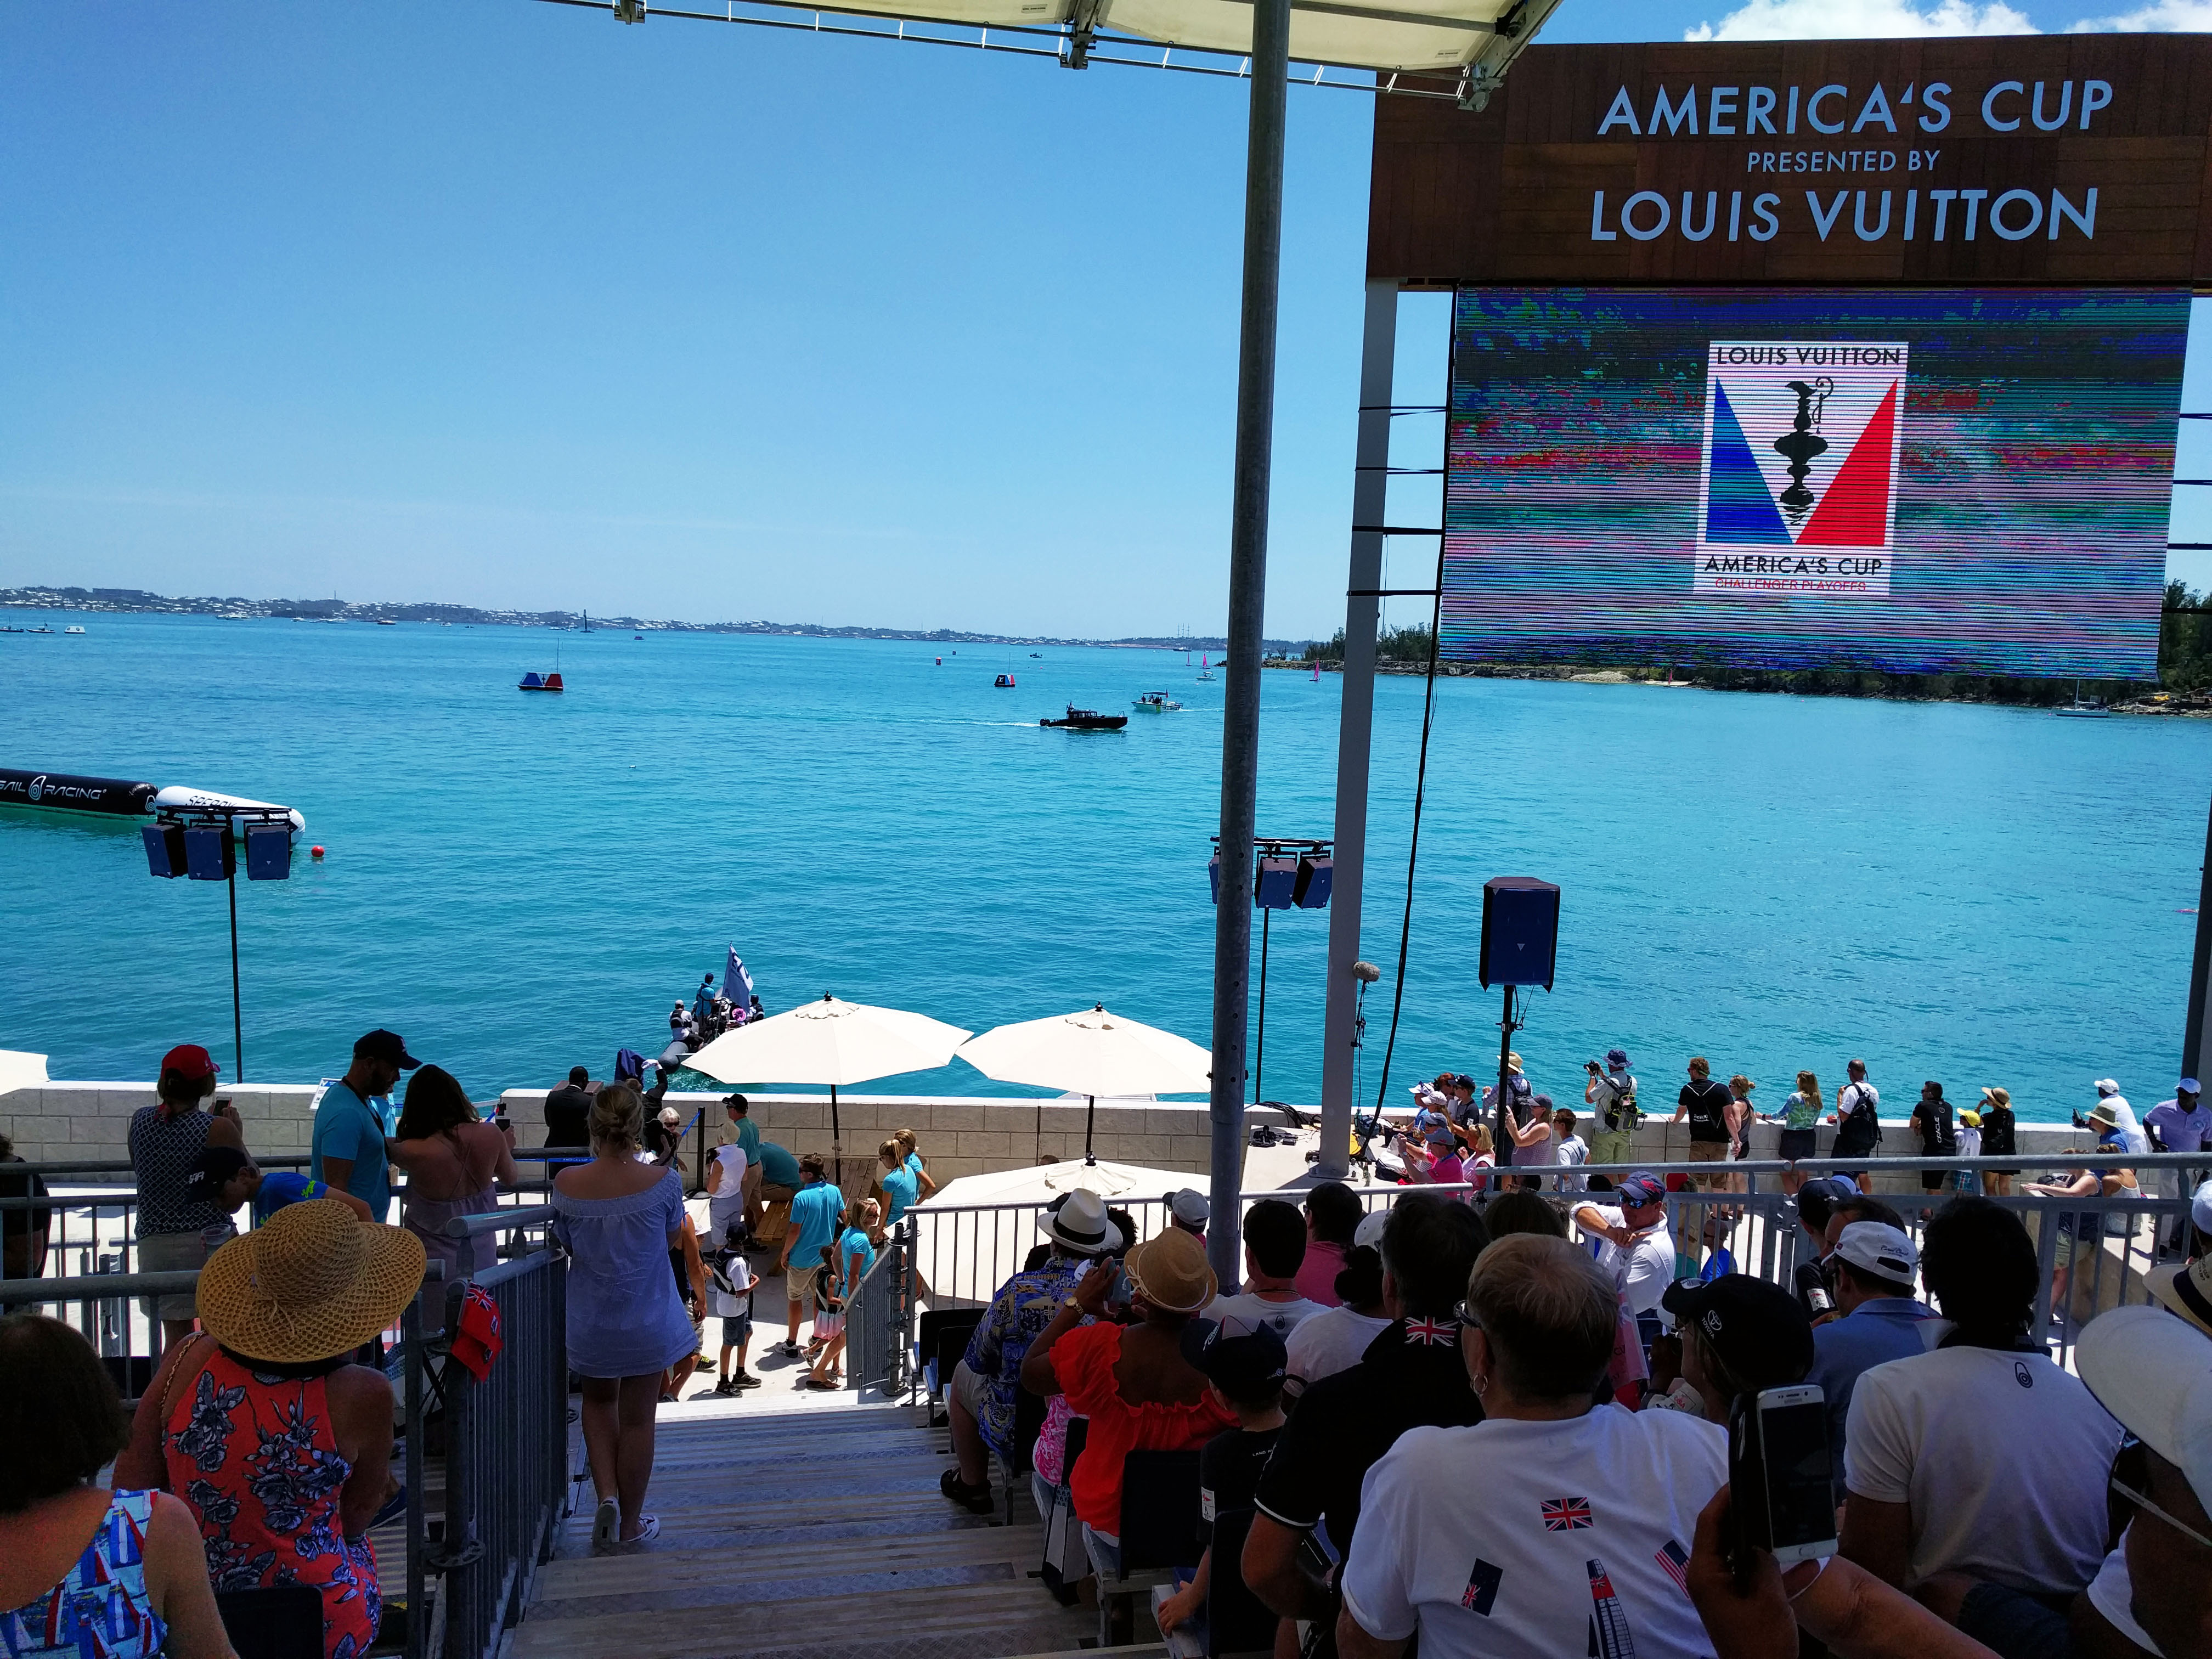 Bermuda's Redemption Depends On The Last Great Yacht Race